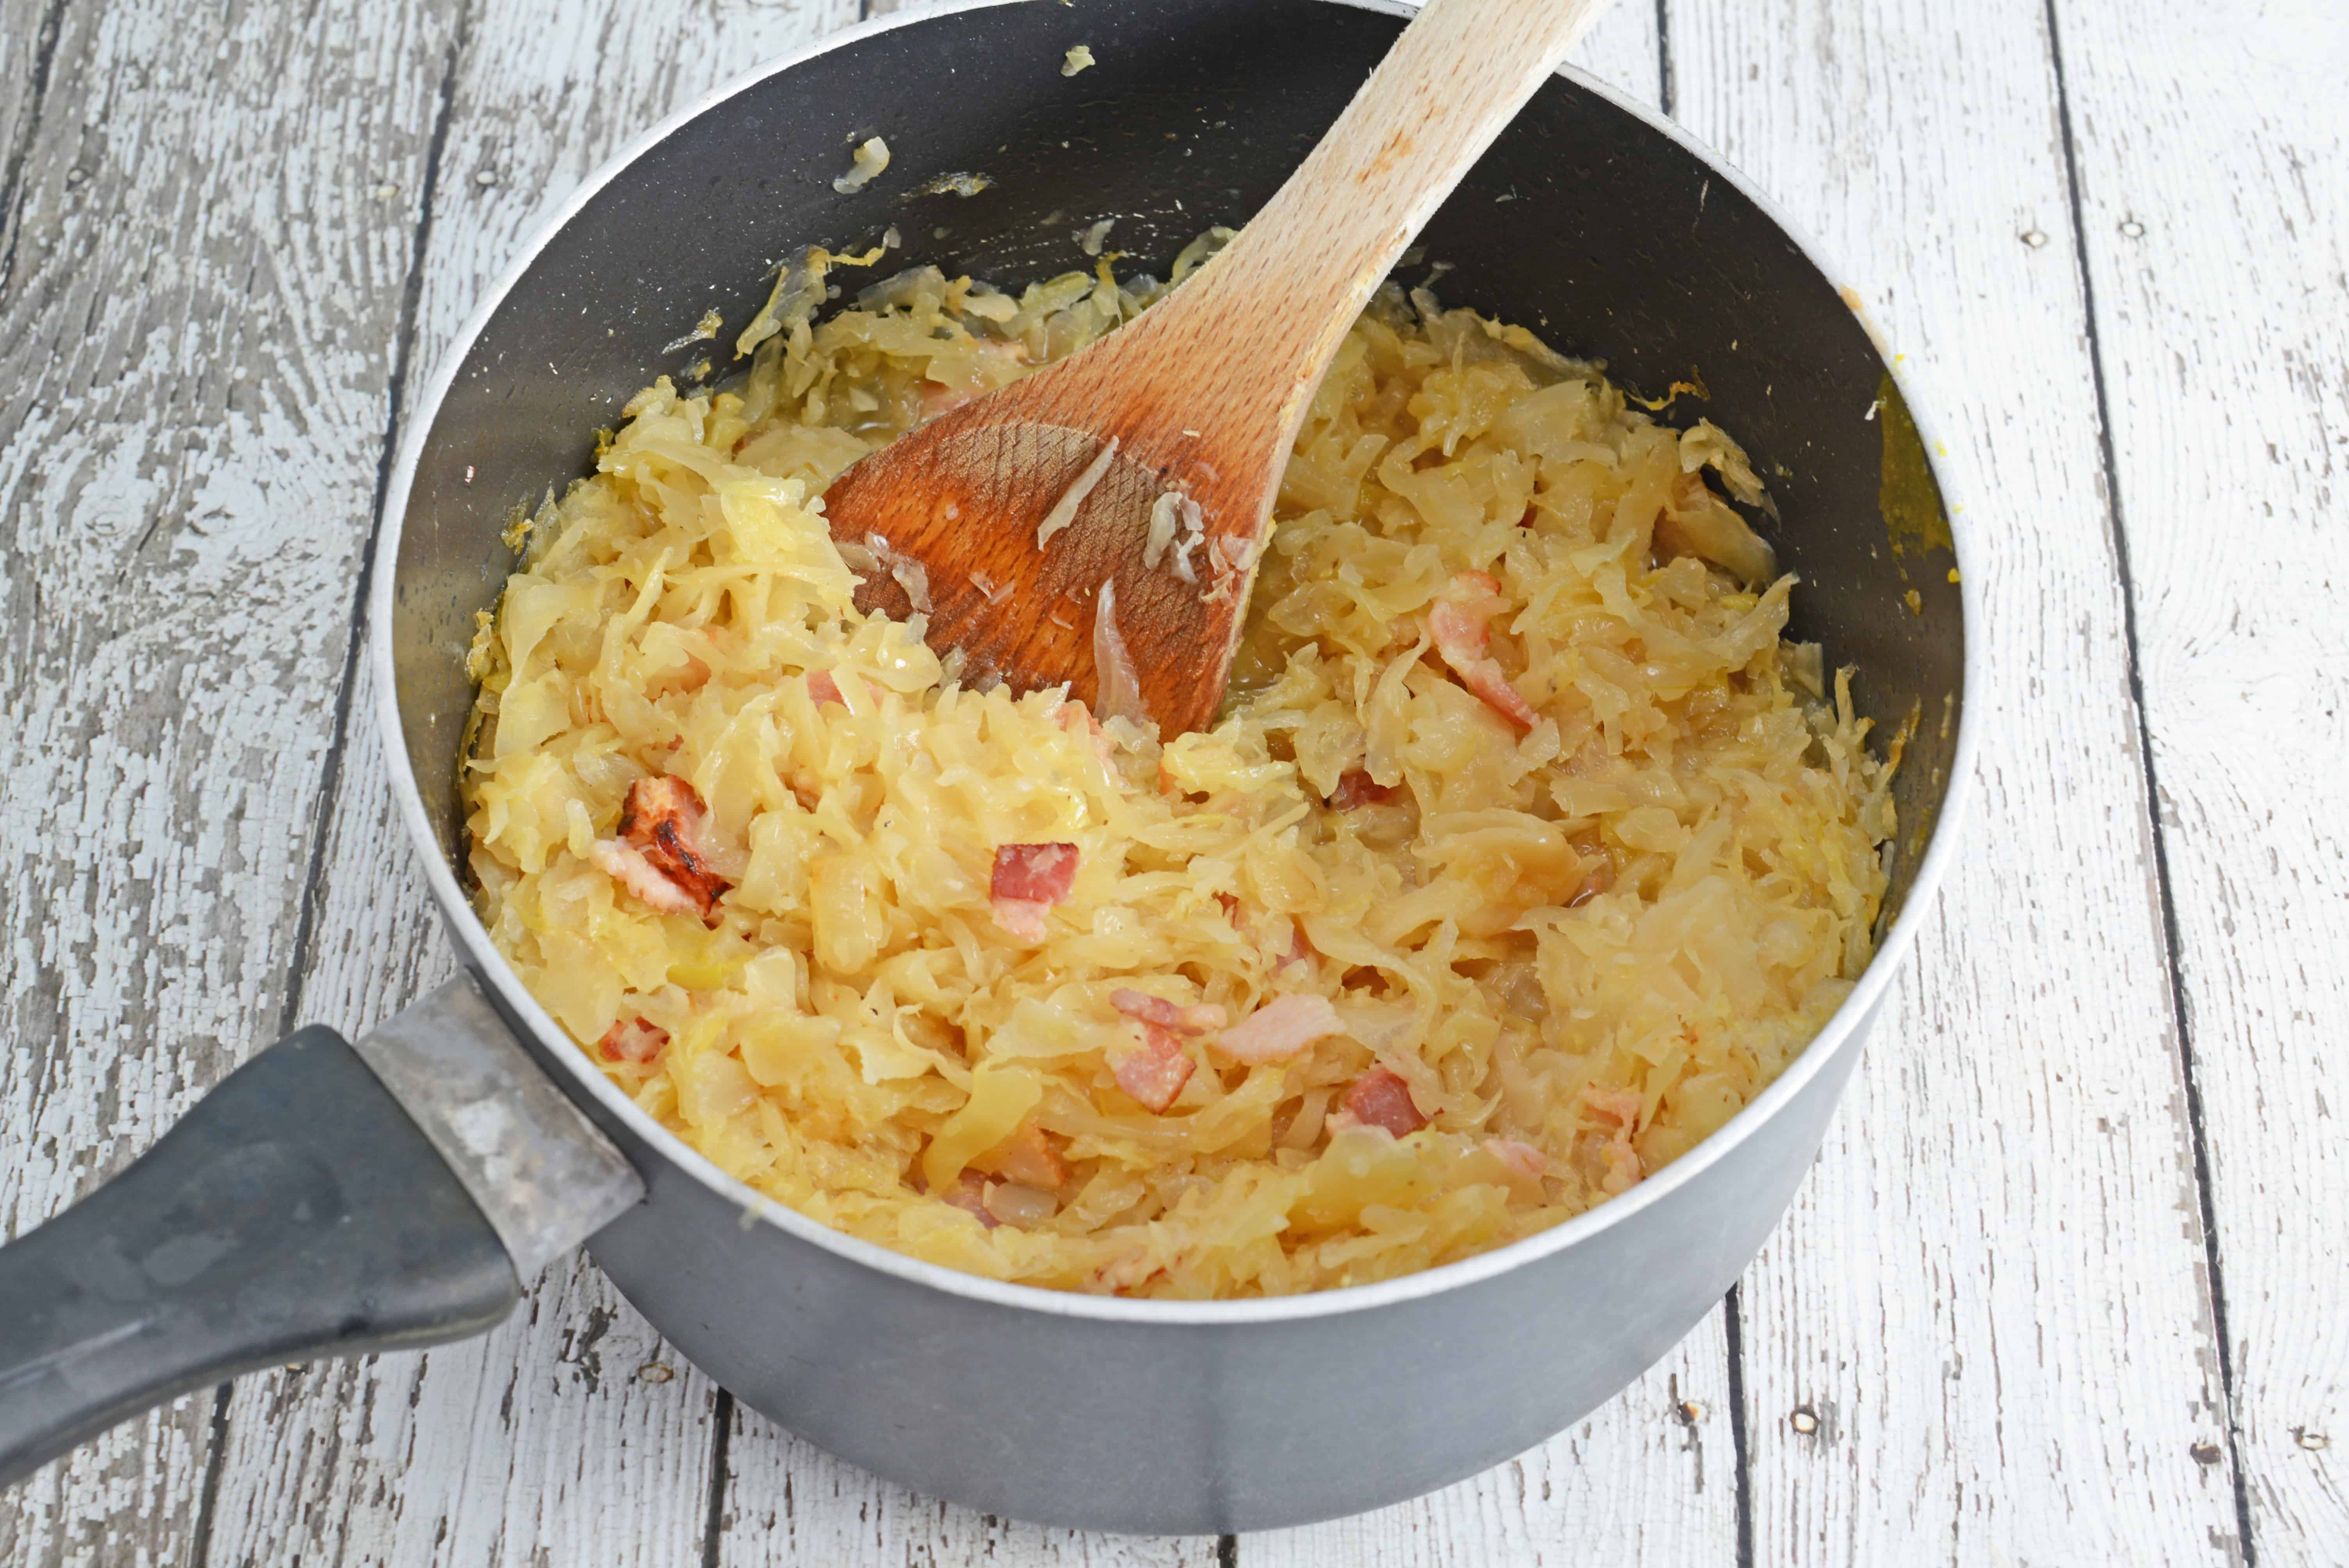 Beer and Bacon Sauerkraut Recipe- drained sauerkraut reconstituted with the flavors of beer and bacon. Top on hamburgers or hot dogs. www.savoryexperiments.com